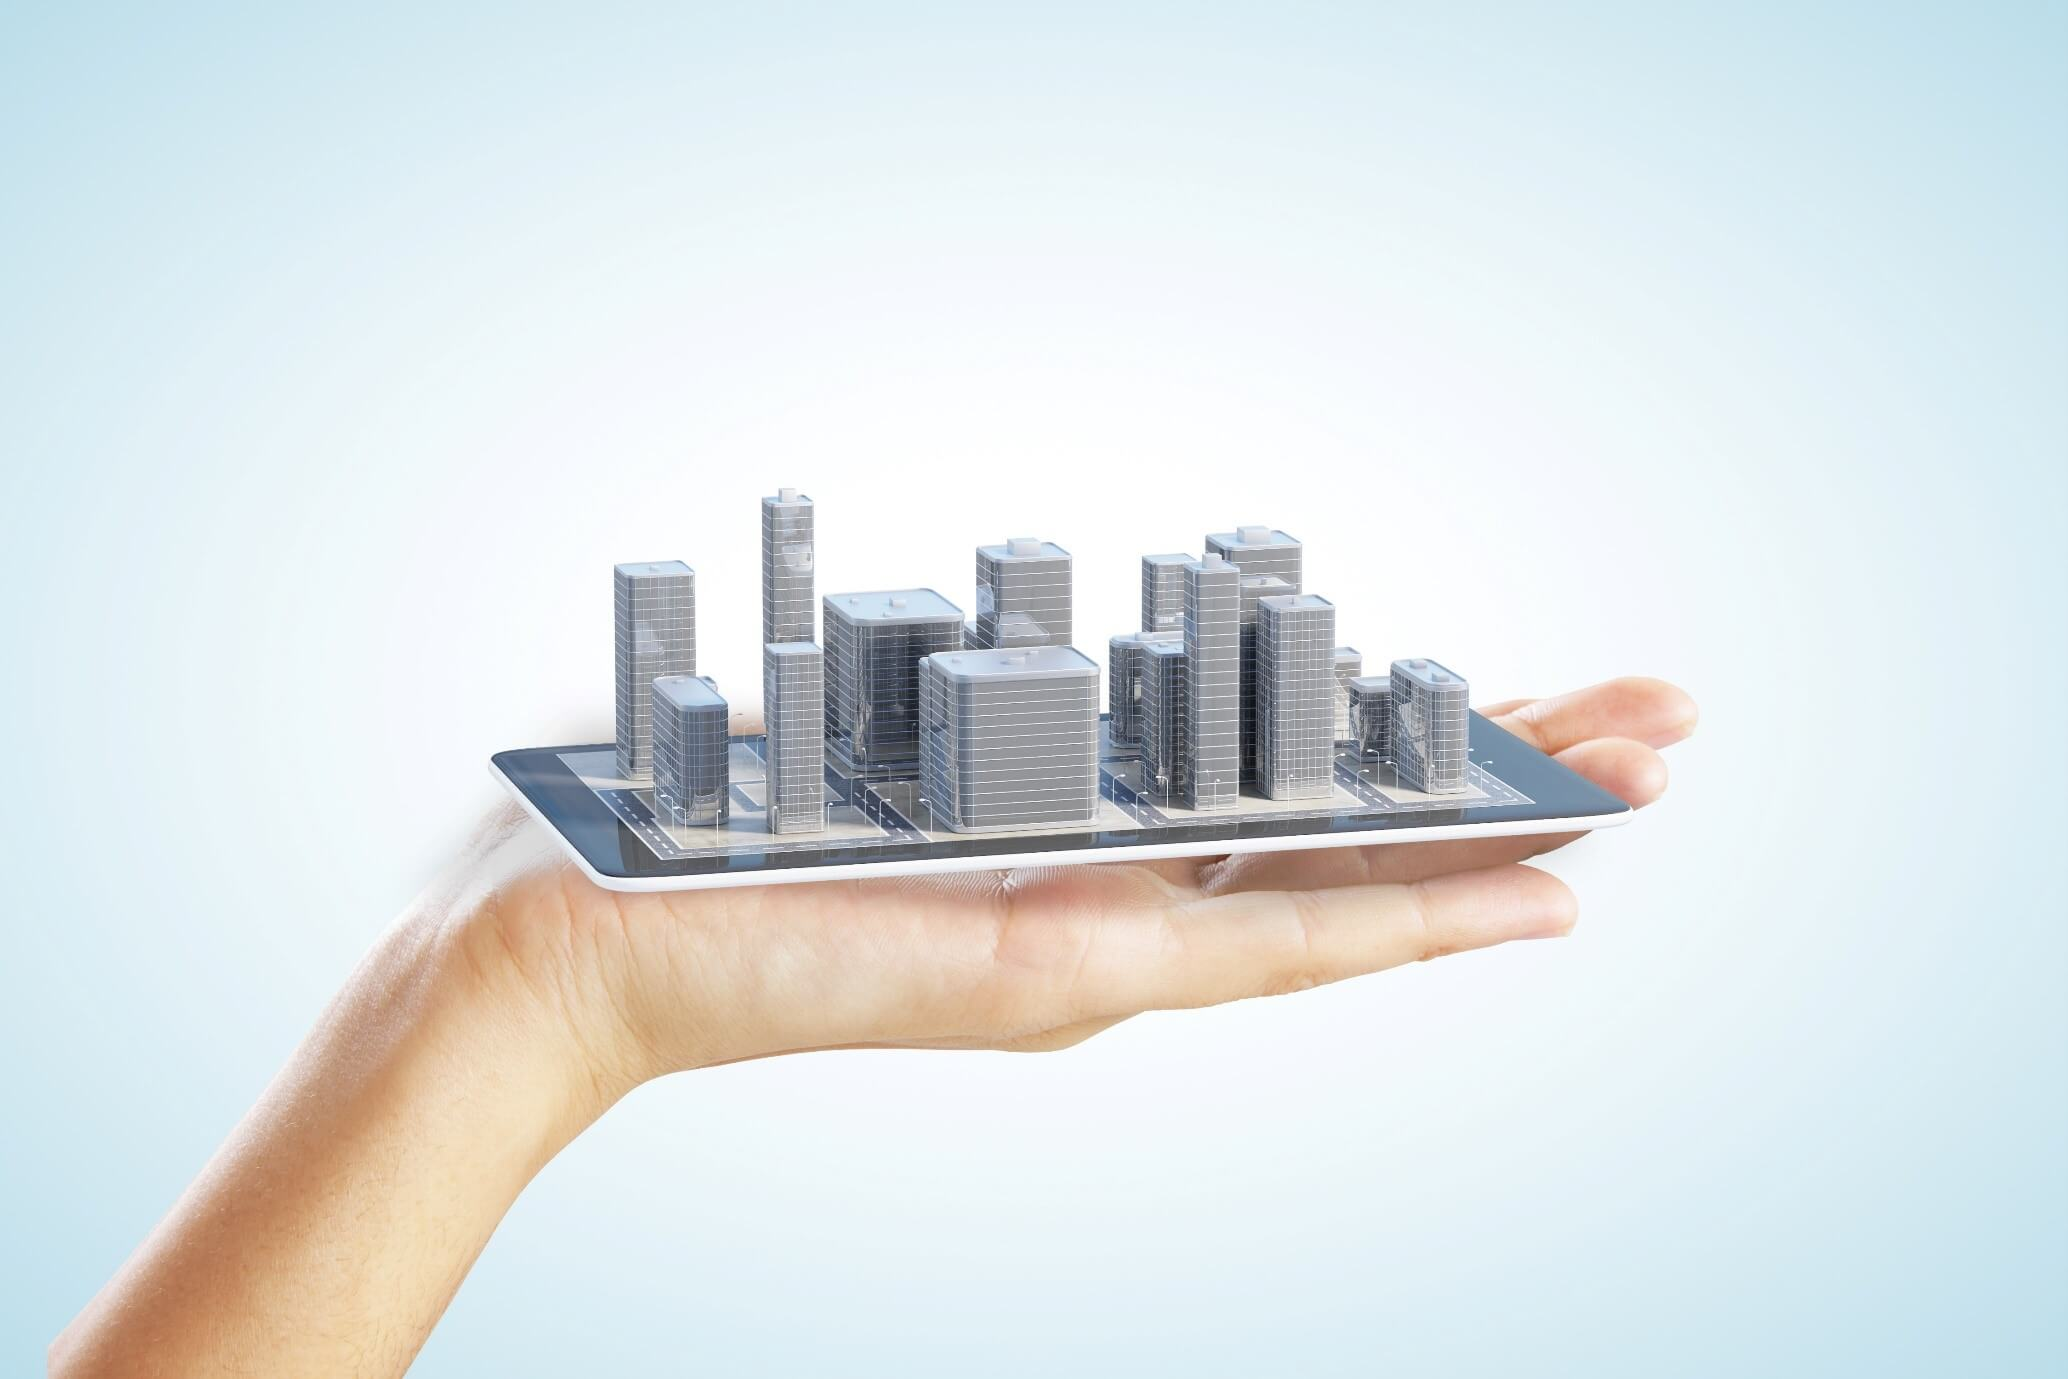 hand holding a tablet with 3d skyscrapers